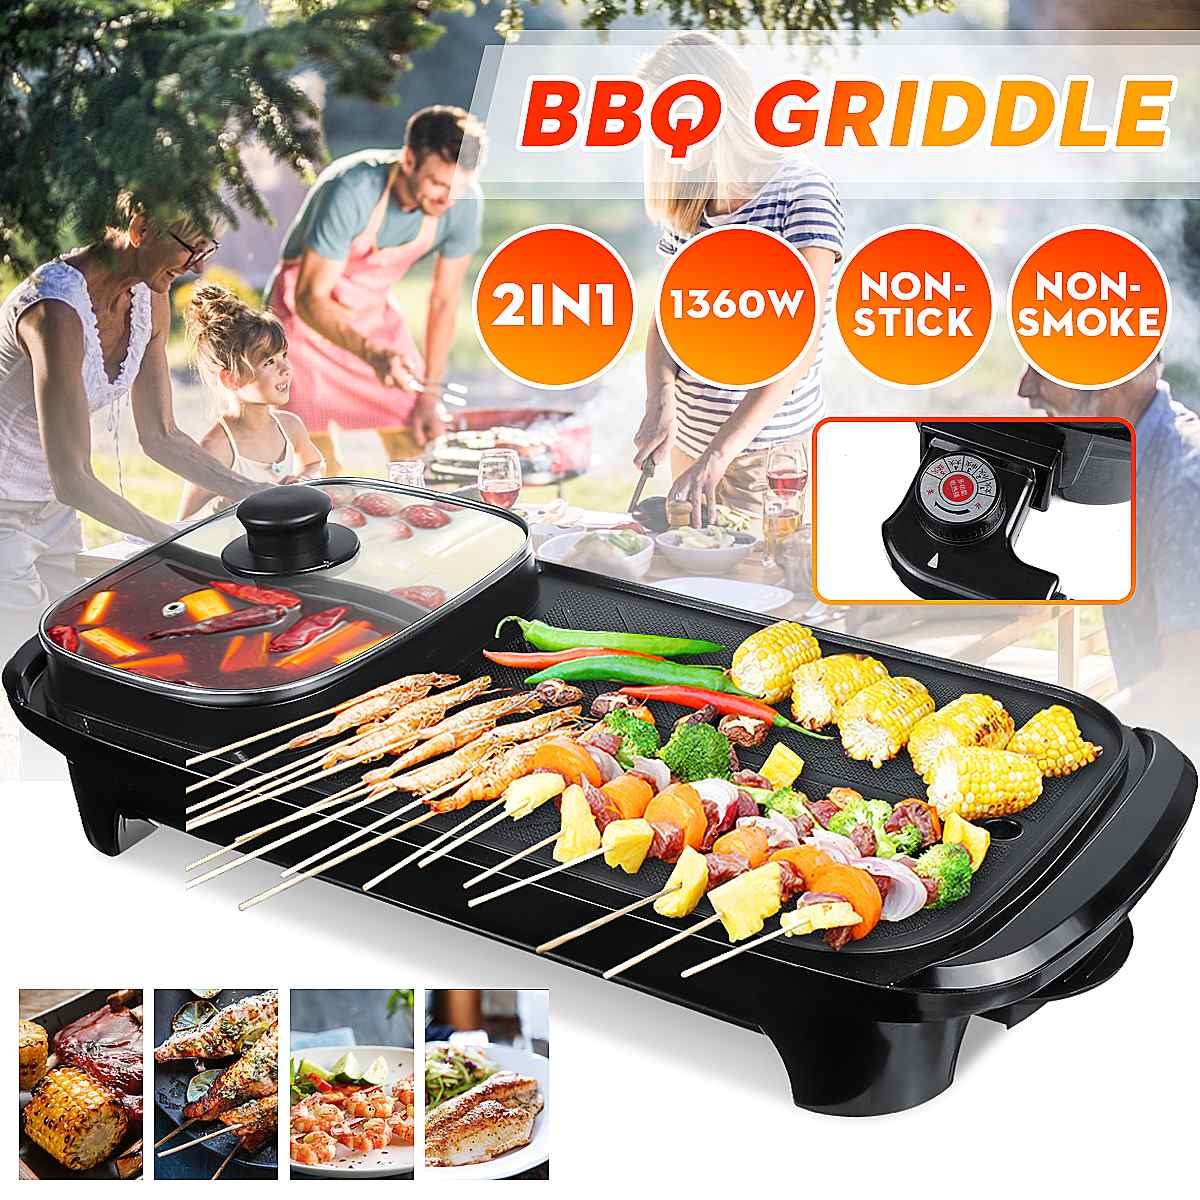 1600w electric shabu roasted pot multifunctional electric pan grill bbq grill raclette grill electric hotpot with grill pan 2in1 Electric Griddles Hot Pot Oven Non-stick Electric Grill Baking Pan Hotpot Smokeless BBQ Barbecue Machine 220V Multi Cooker